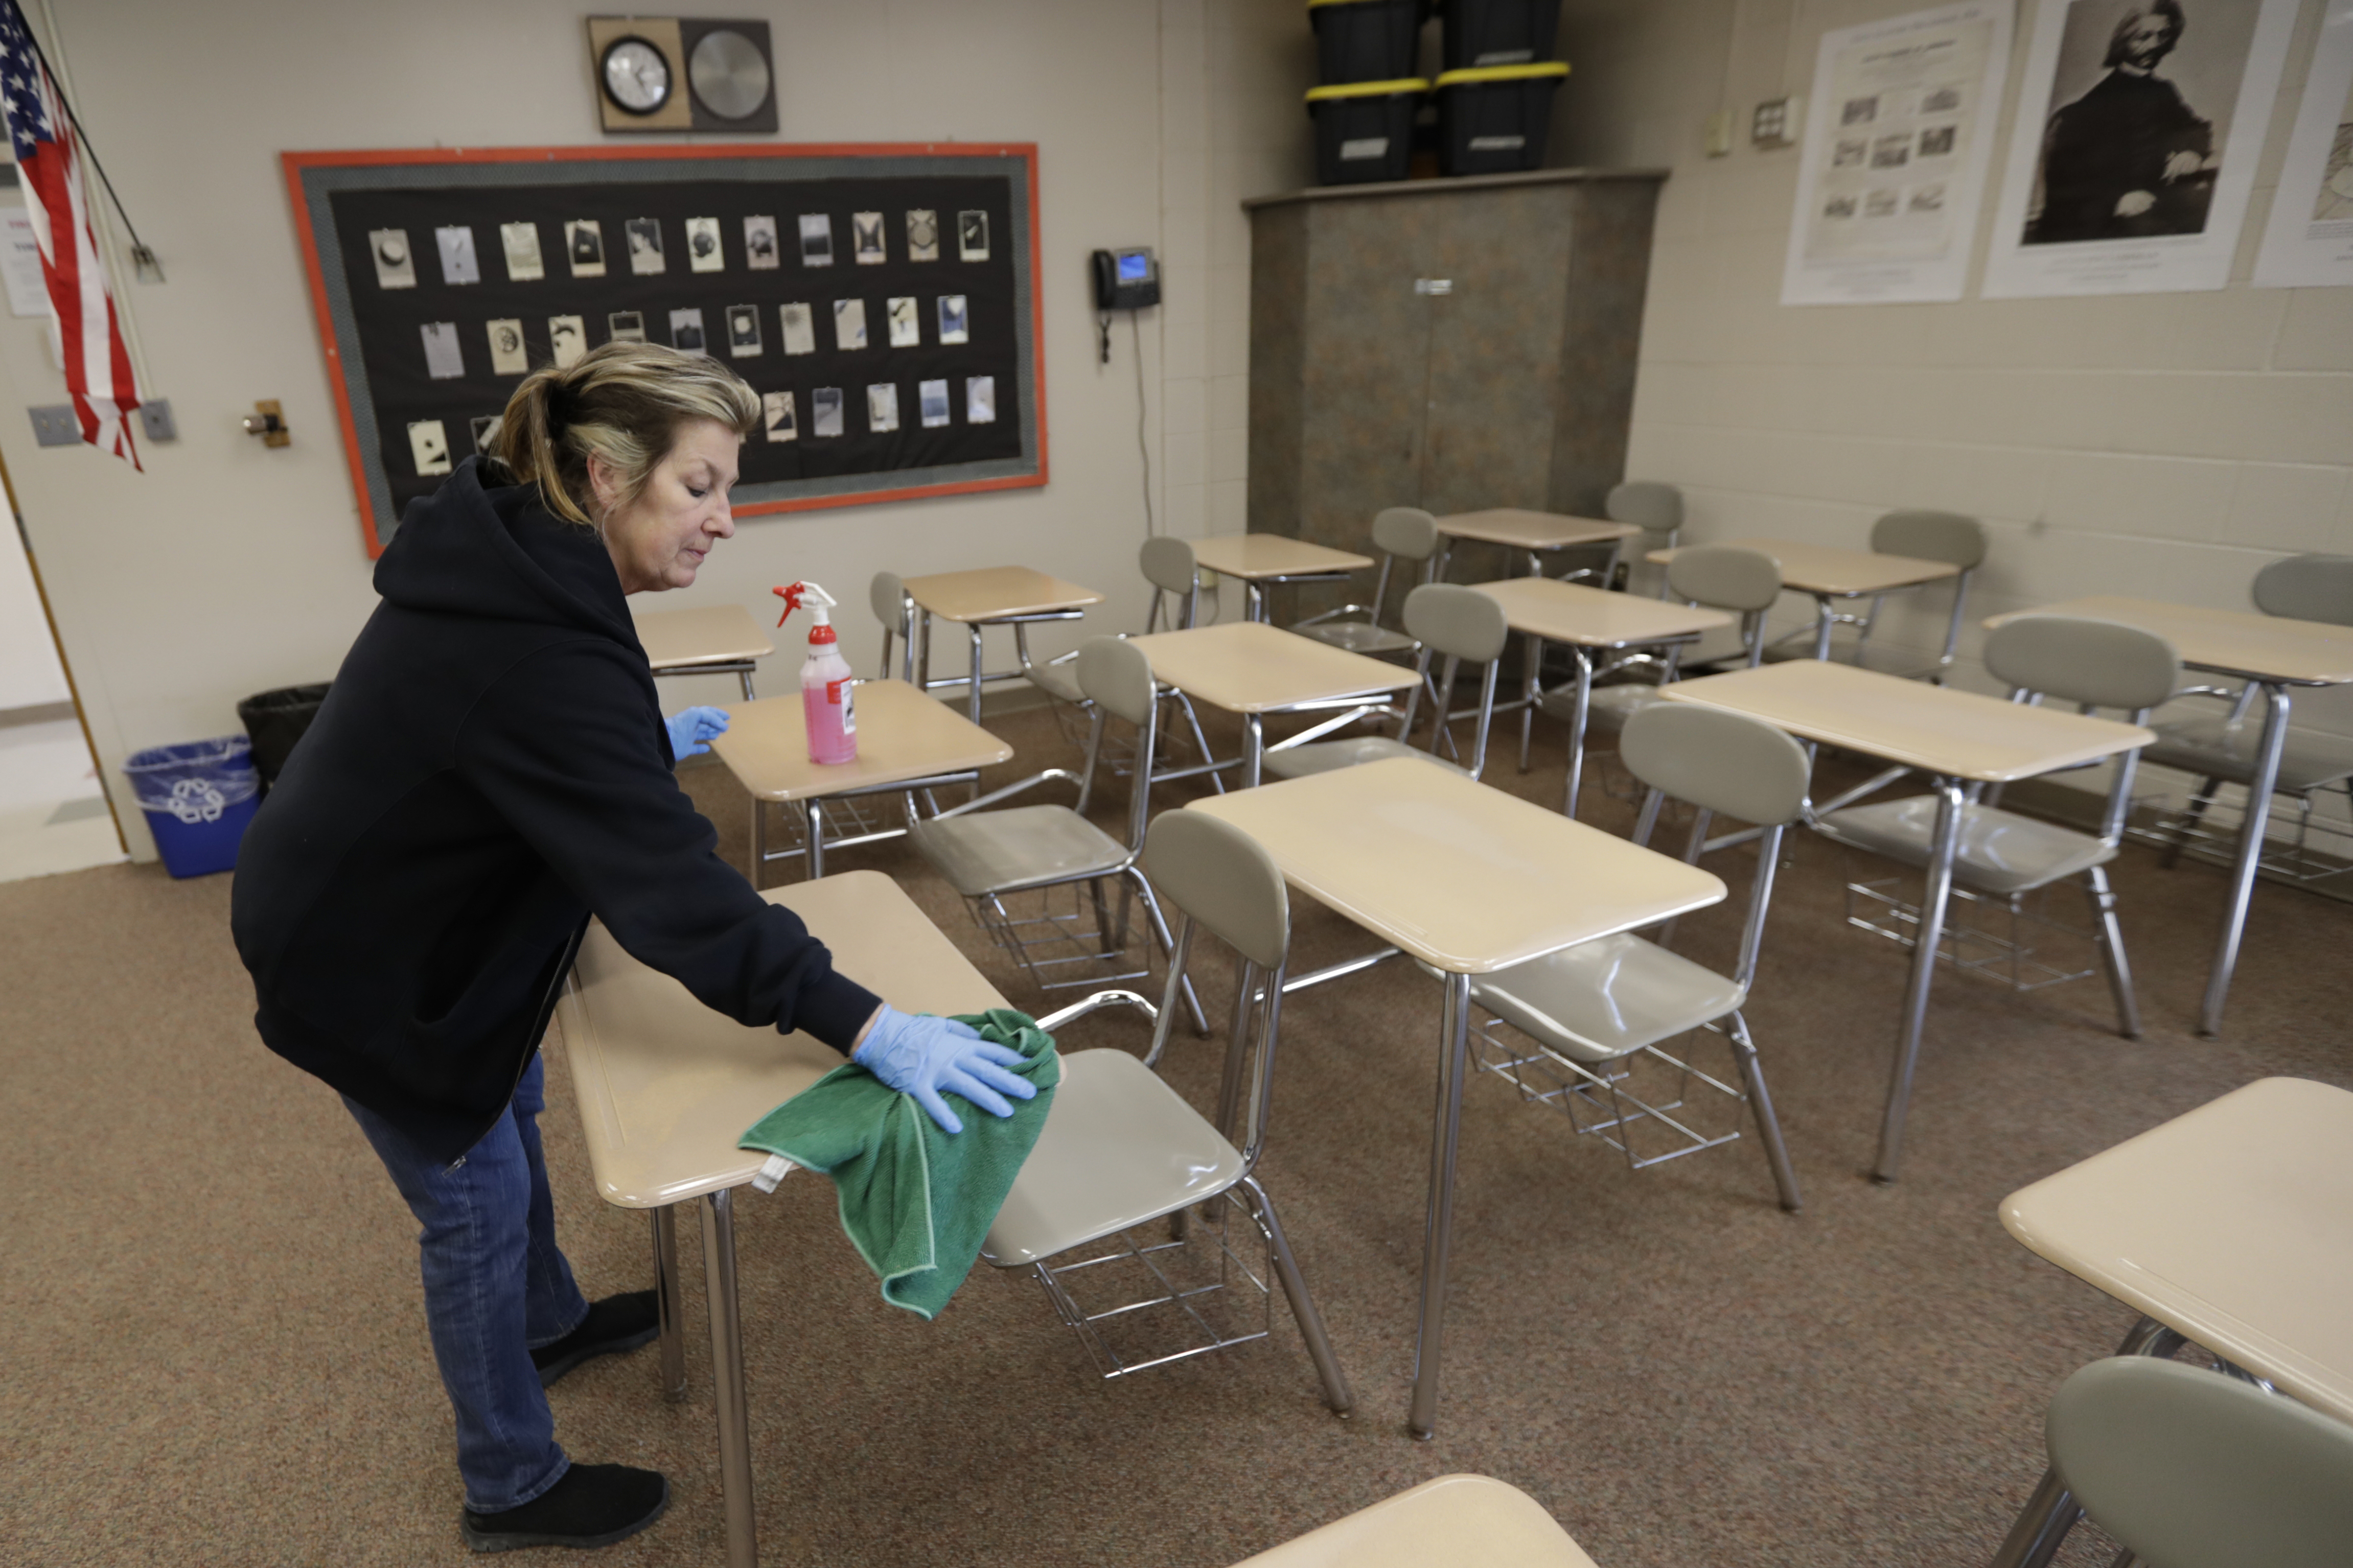 Custodian Patti Alesci cleans desks at Orange High School, Monday, March 16, 2020, in Pepper Pike, Ohio. A mandatory three-week closure of schools to stem the spread of the coronavirus began Monday, bars and restaurants were closed indefinitely, and the state continued preparations for Election Day Tuesday.